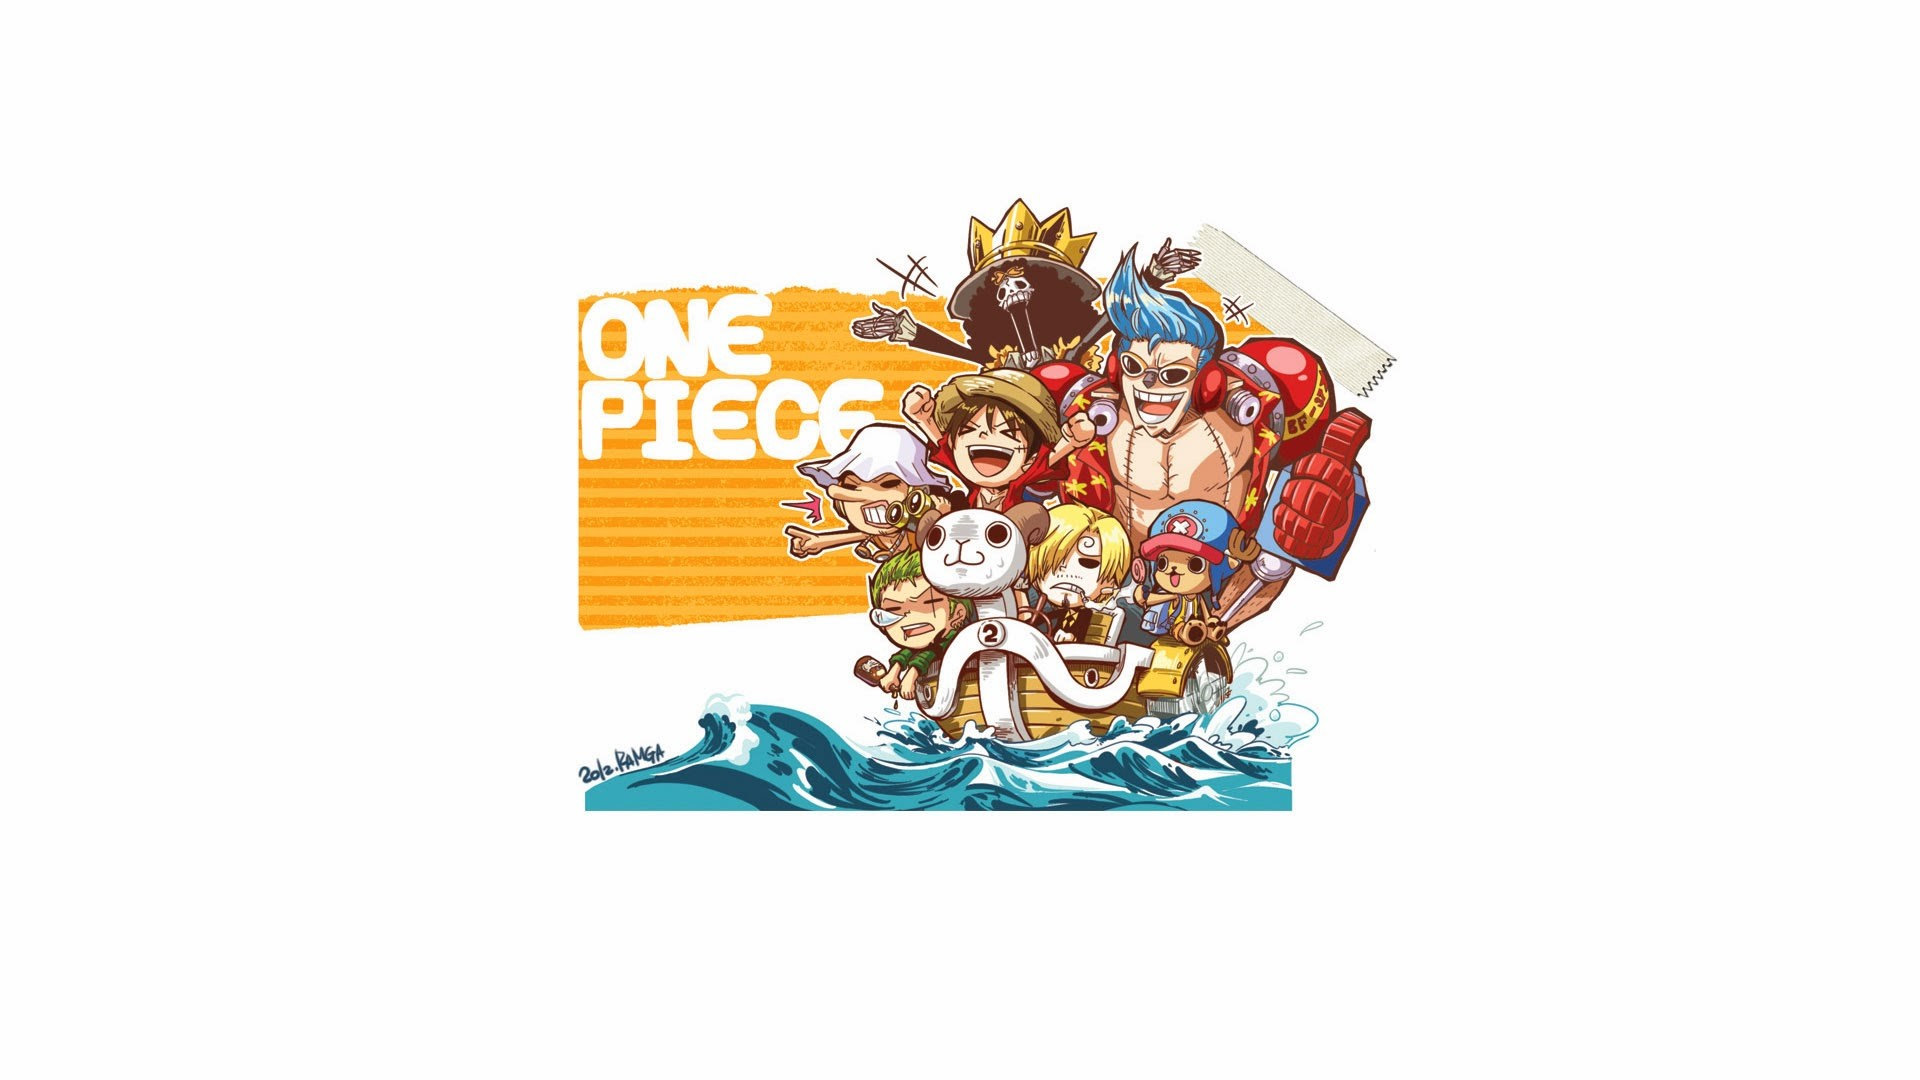 1920x1080 straw hats mugiwara pirates zoro usopp luffy sanji chopper franky brook one  piece anime chibi